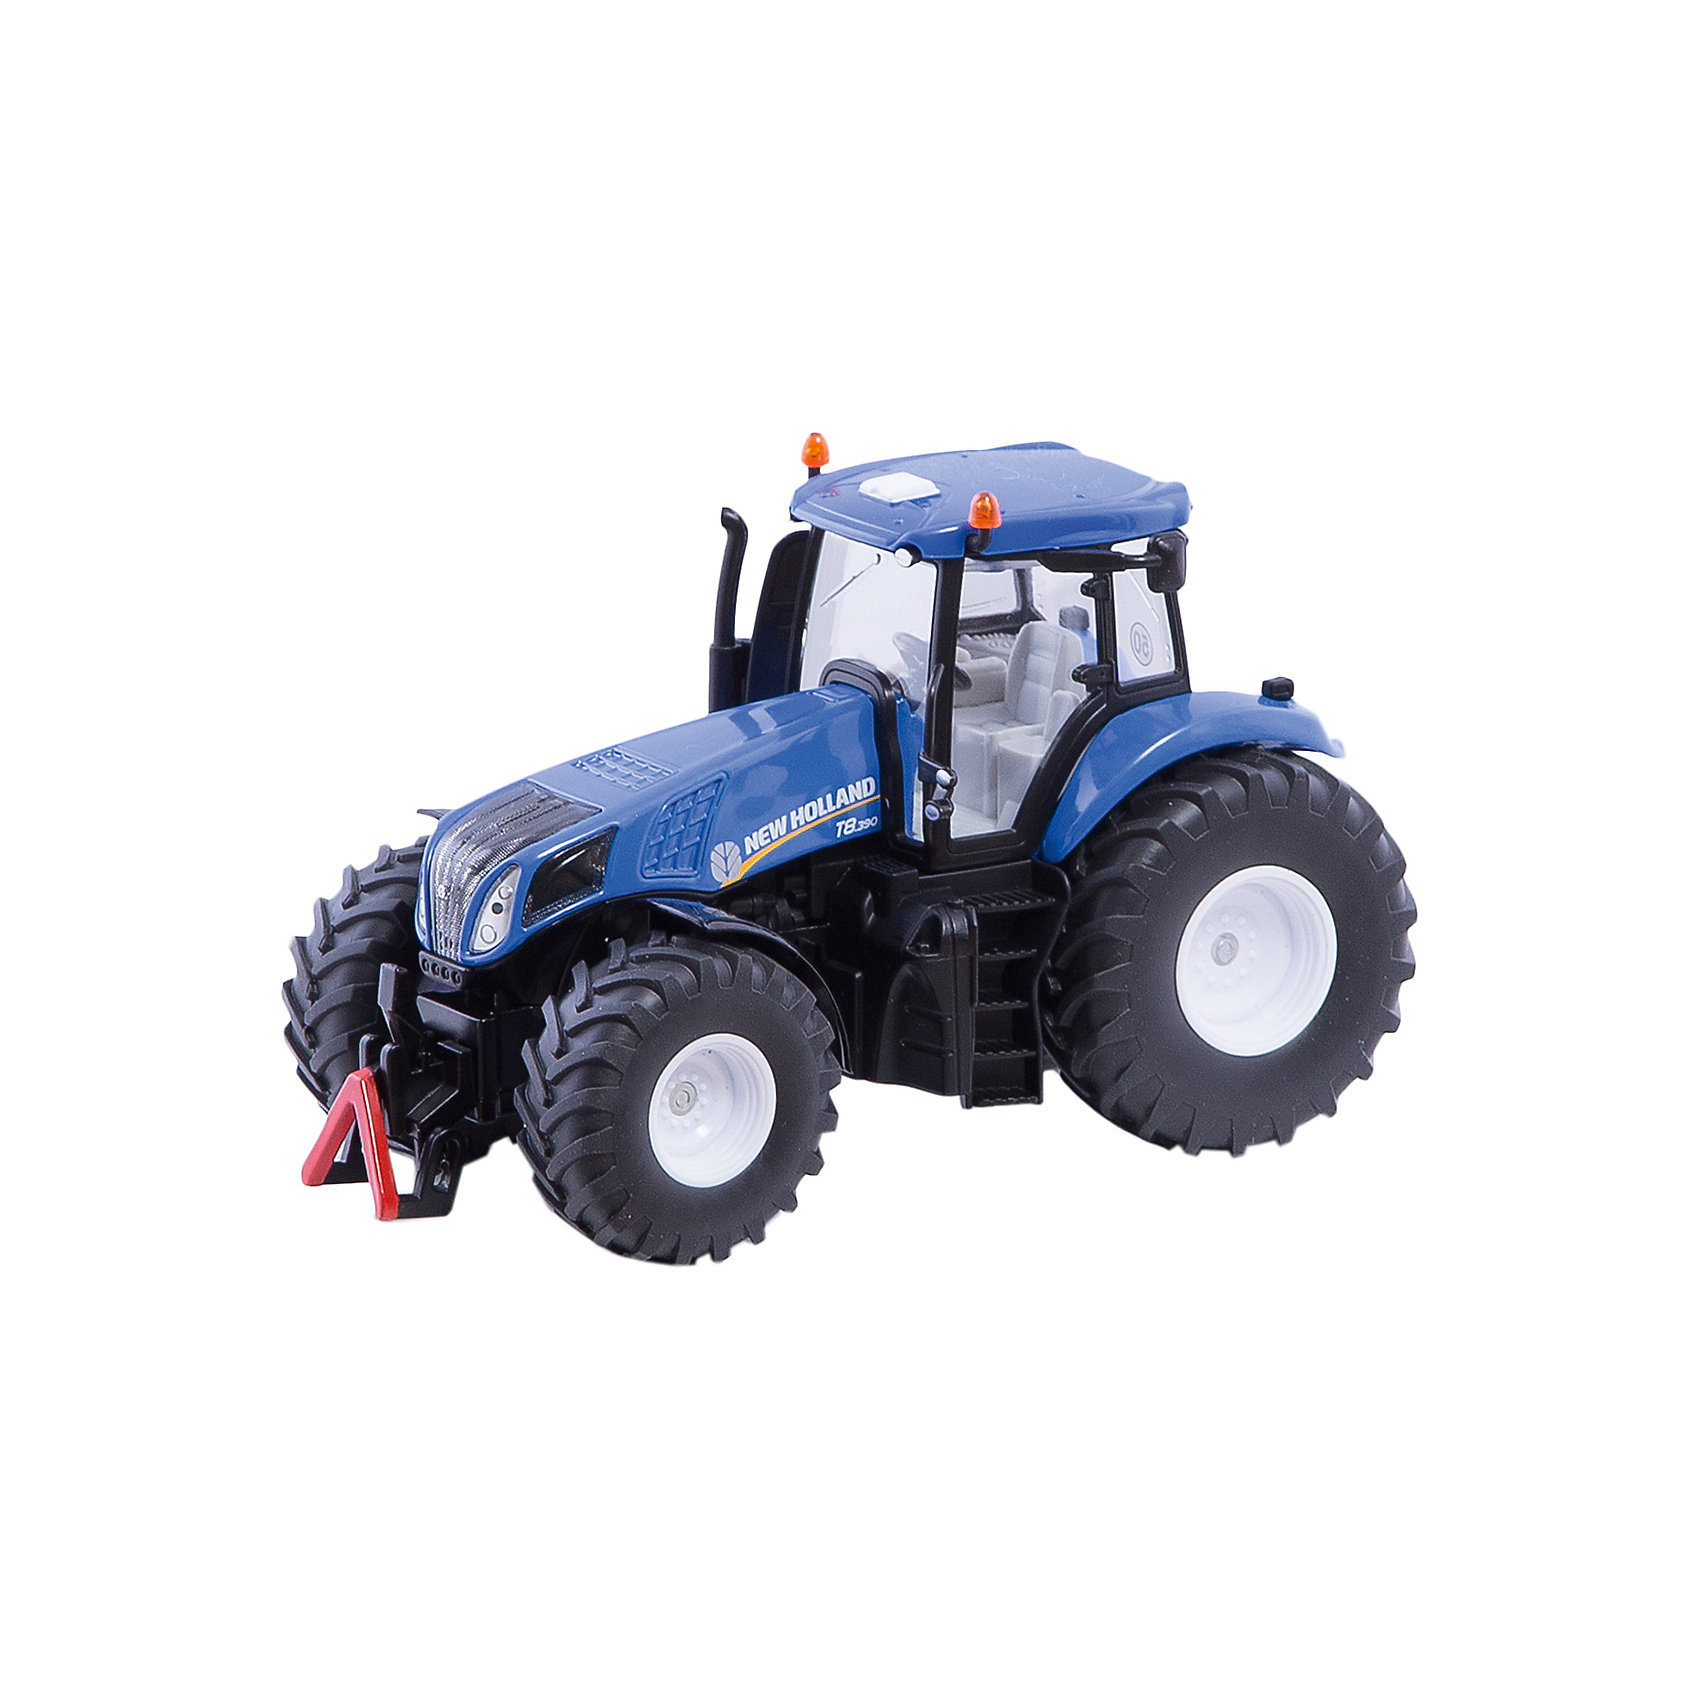 SIKU Трактор New Holland, синий (1:32), SIKU siku трактор new holland синий 1 72 siku